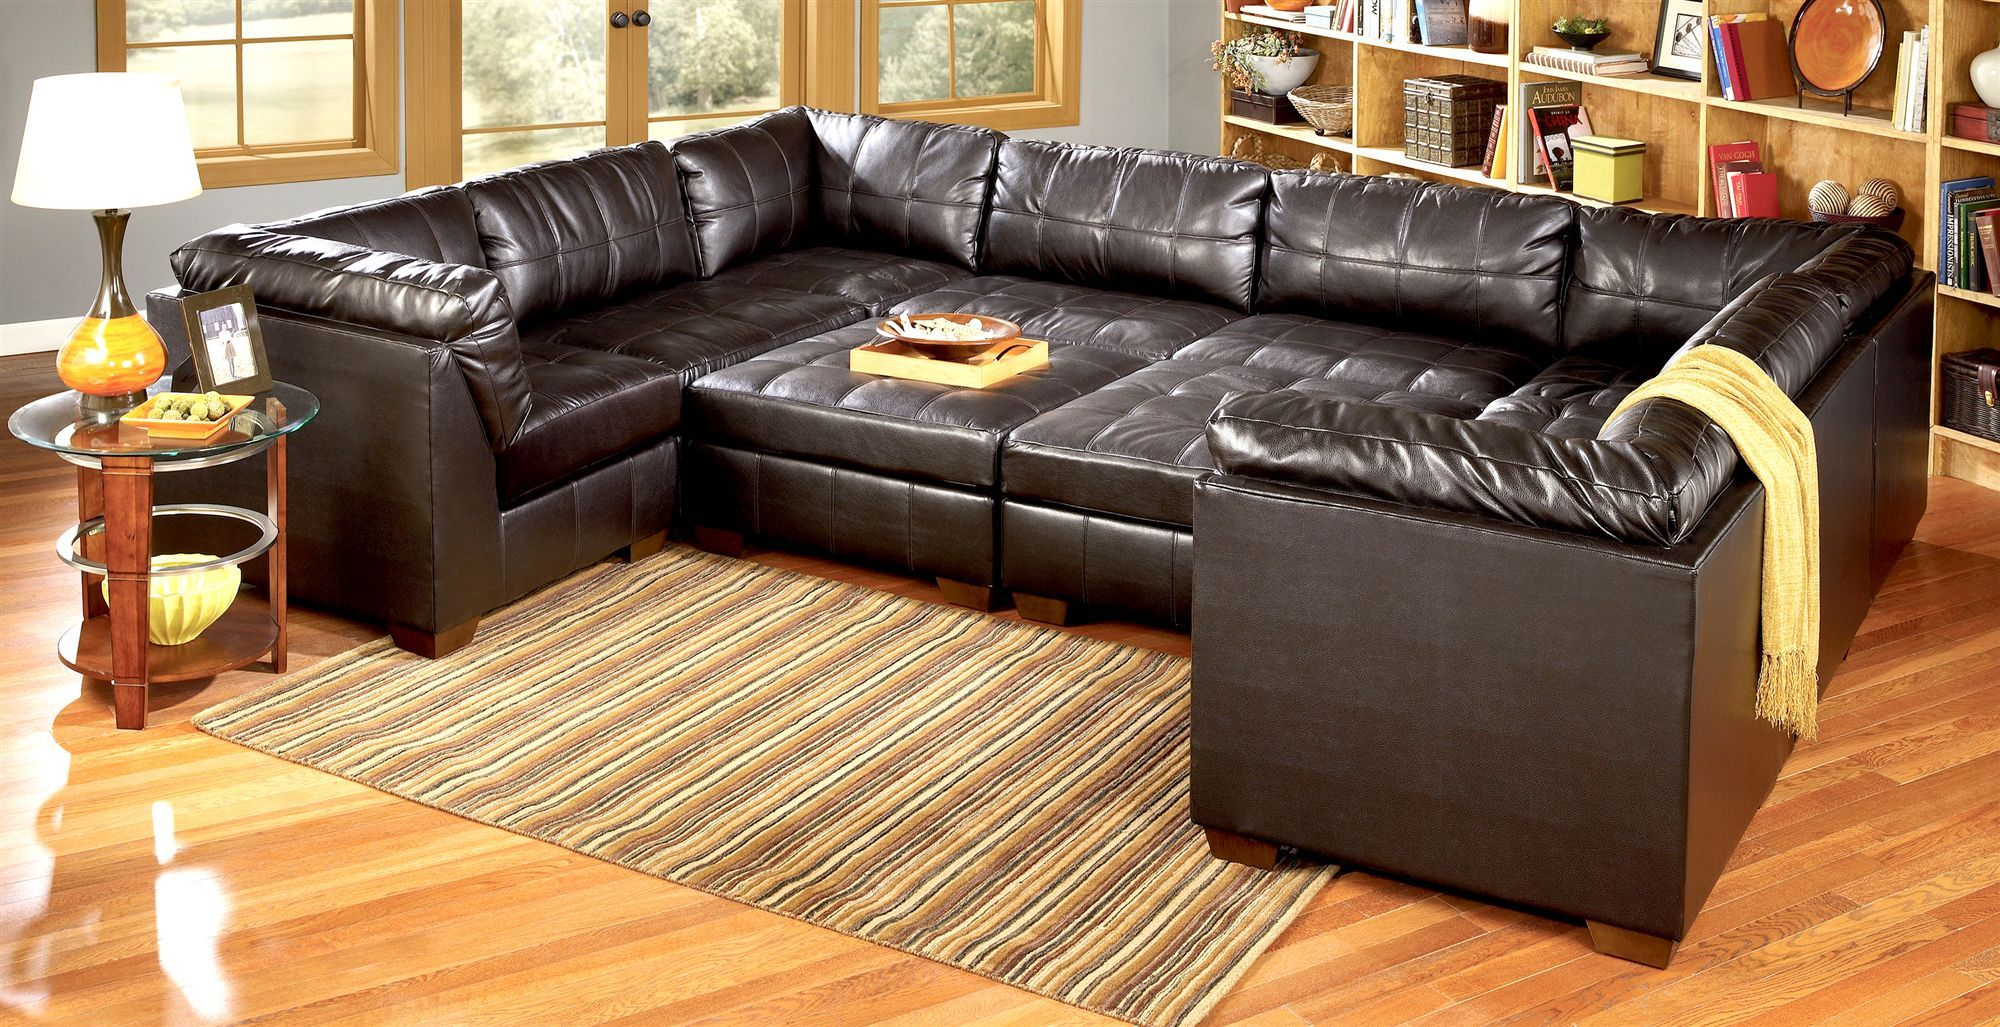 sofa pit couch stella modular group sick home improvements